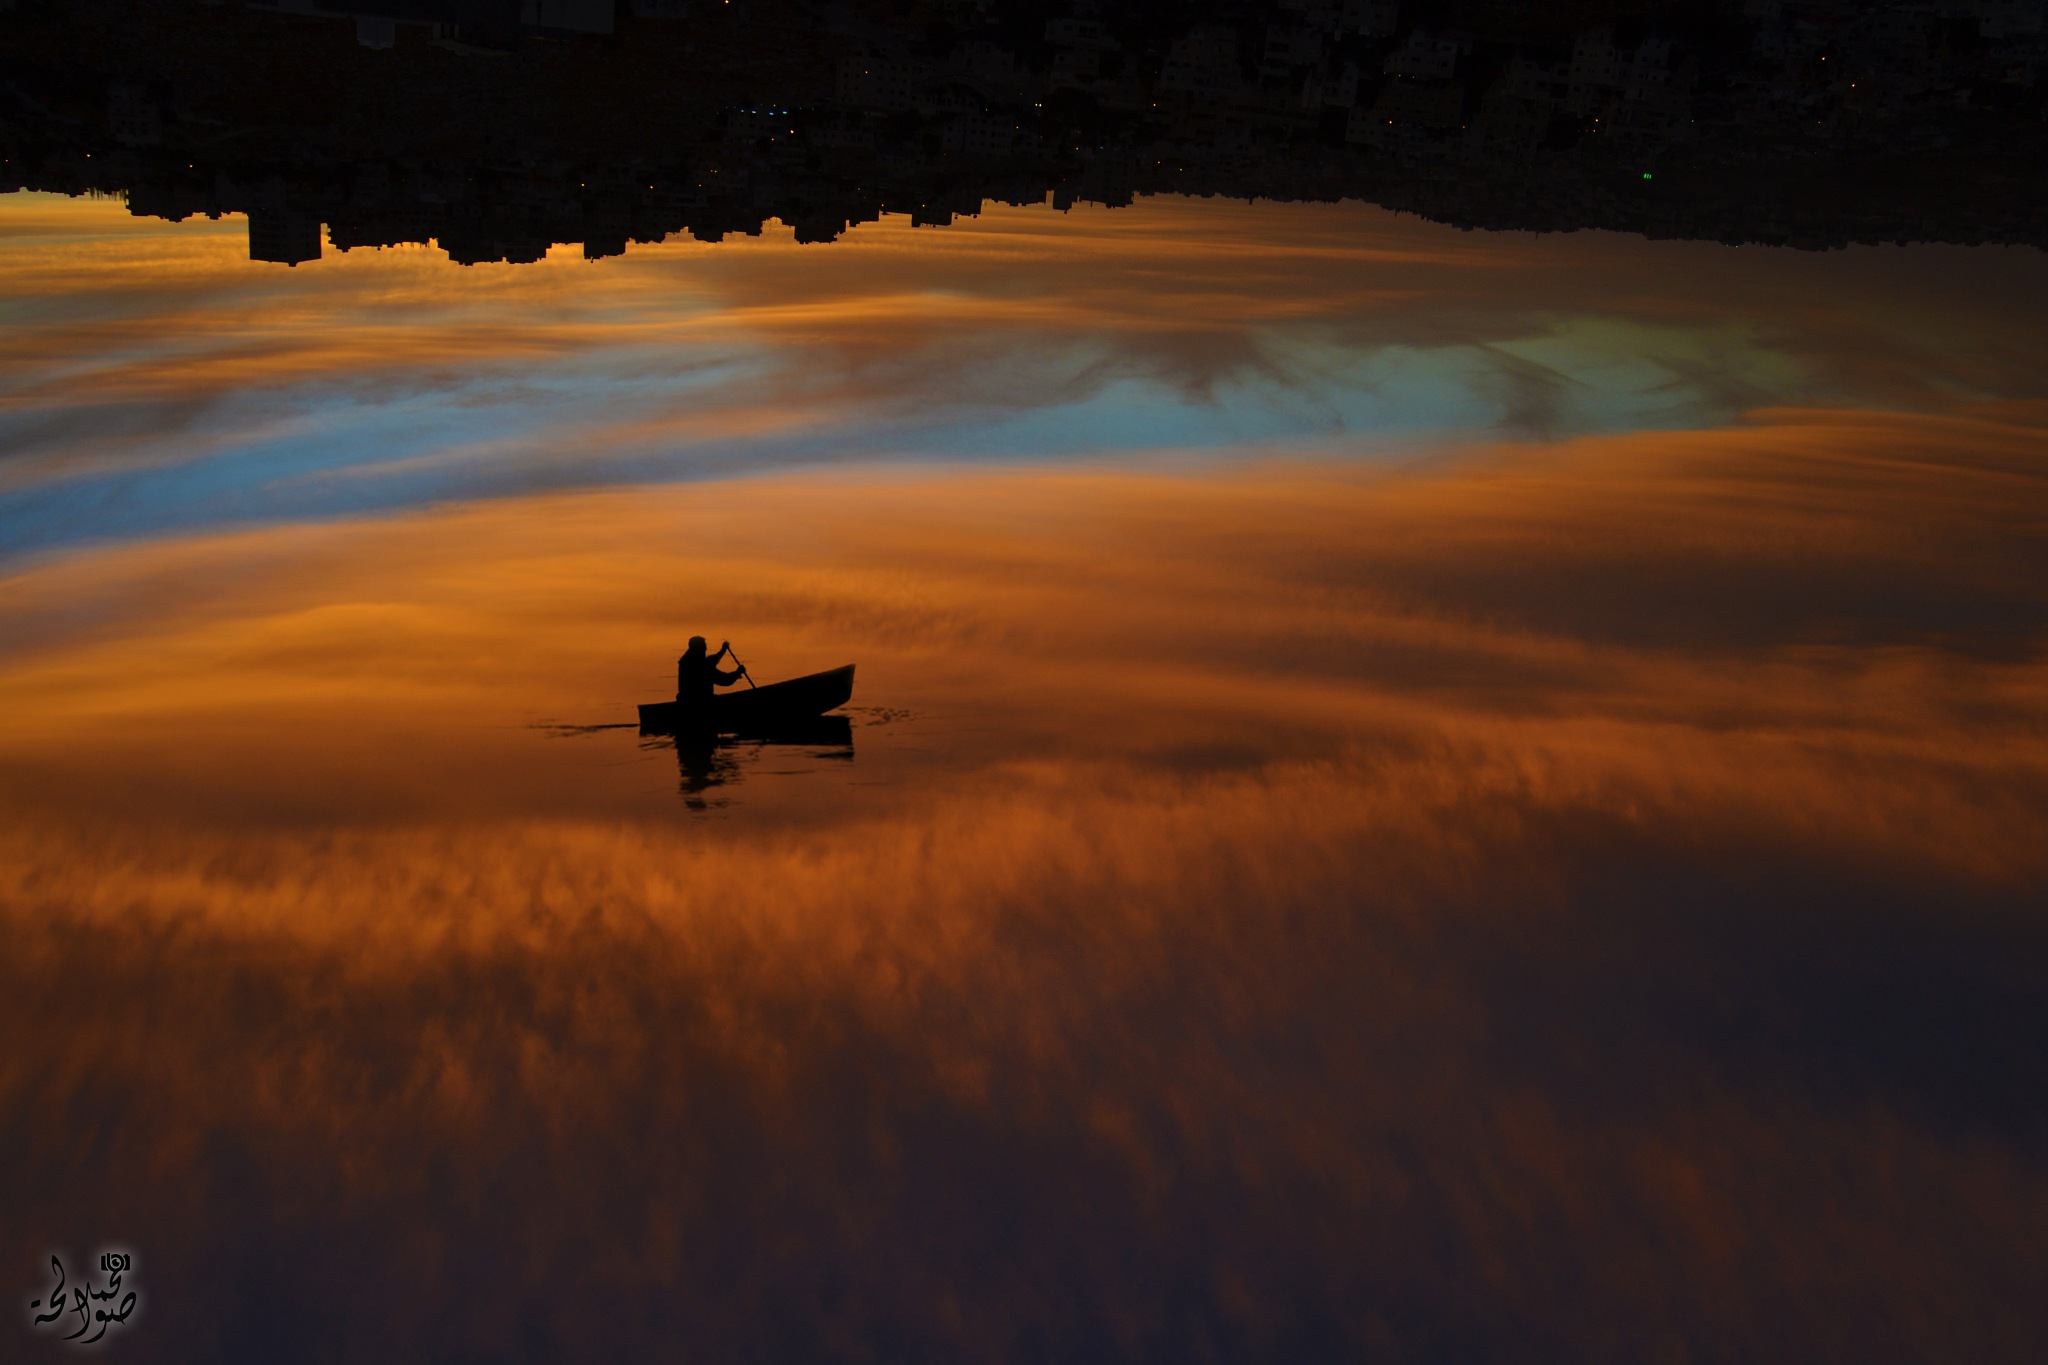 Sailing in the sky by Mohammad Sawalha